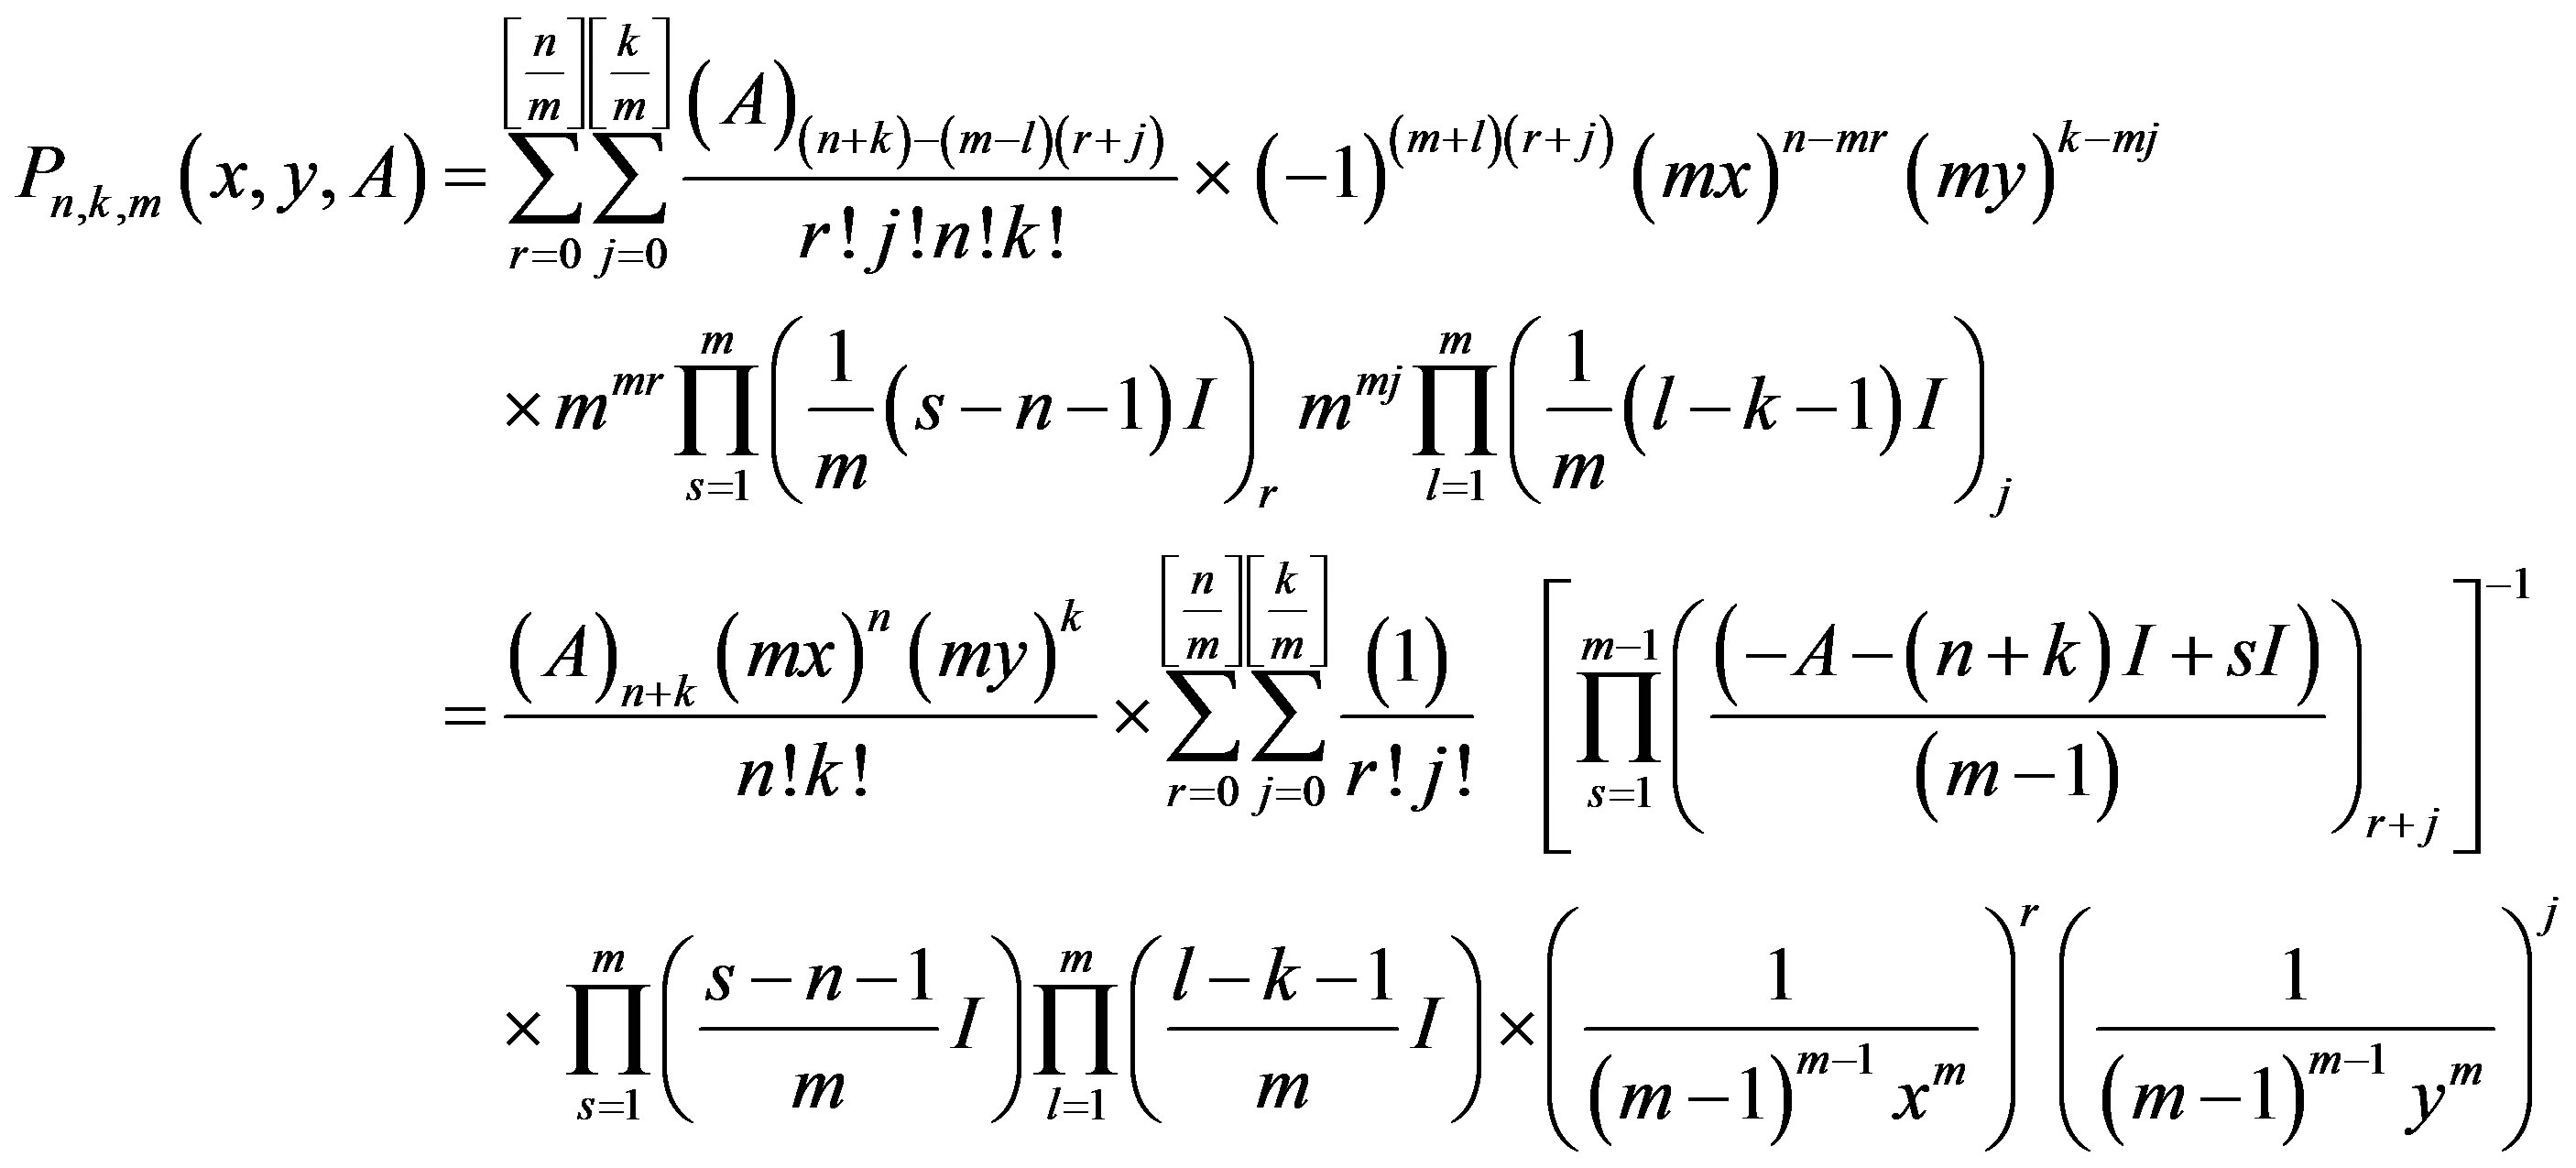 gegenbauer polynomials revisited Gegenbauer jacobi polynomials and 3 some old orthogonal polynomials revisited firstly, we stress on the fact that the results presented in this section are not.